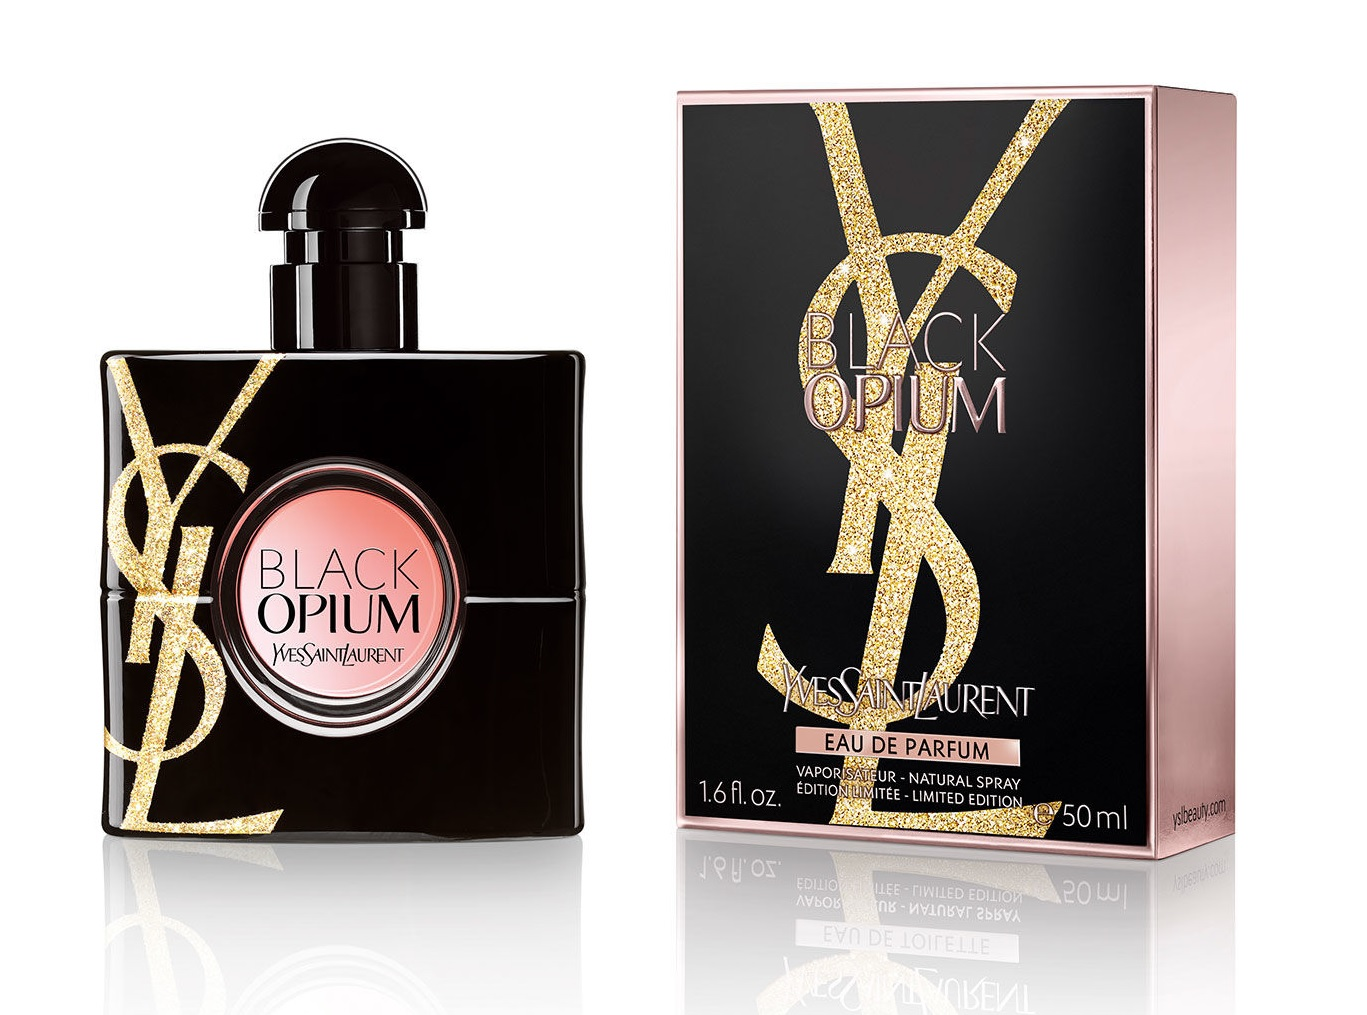 Black Opium Gold Attraction Edition Yves Saint Laurent Perfume A